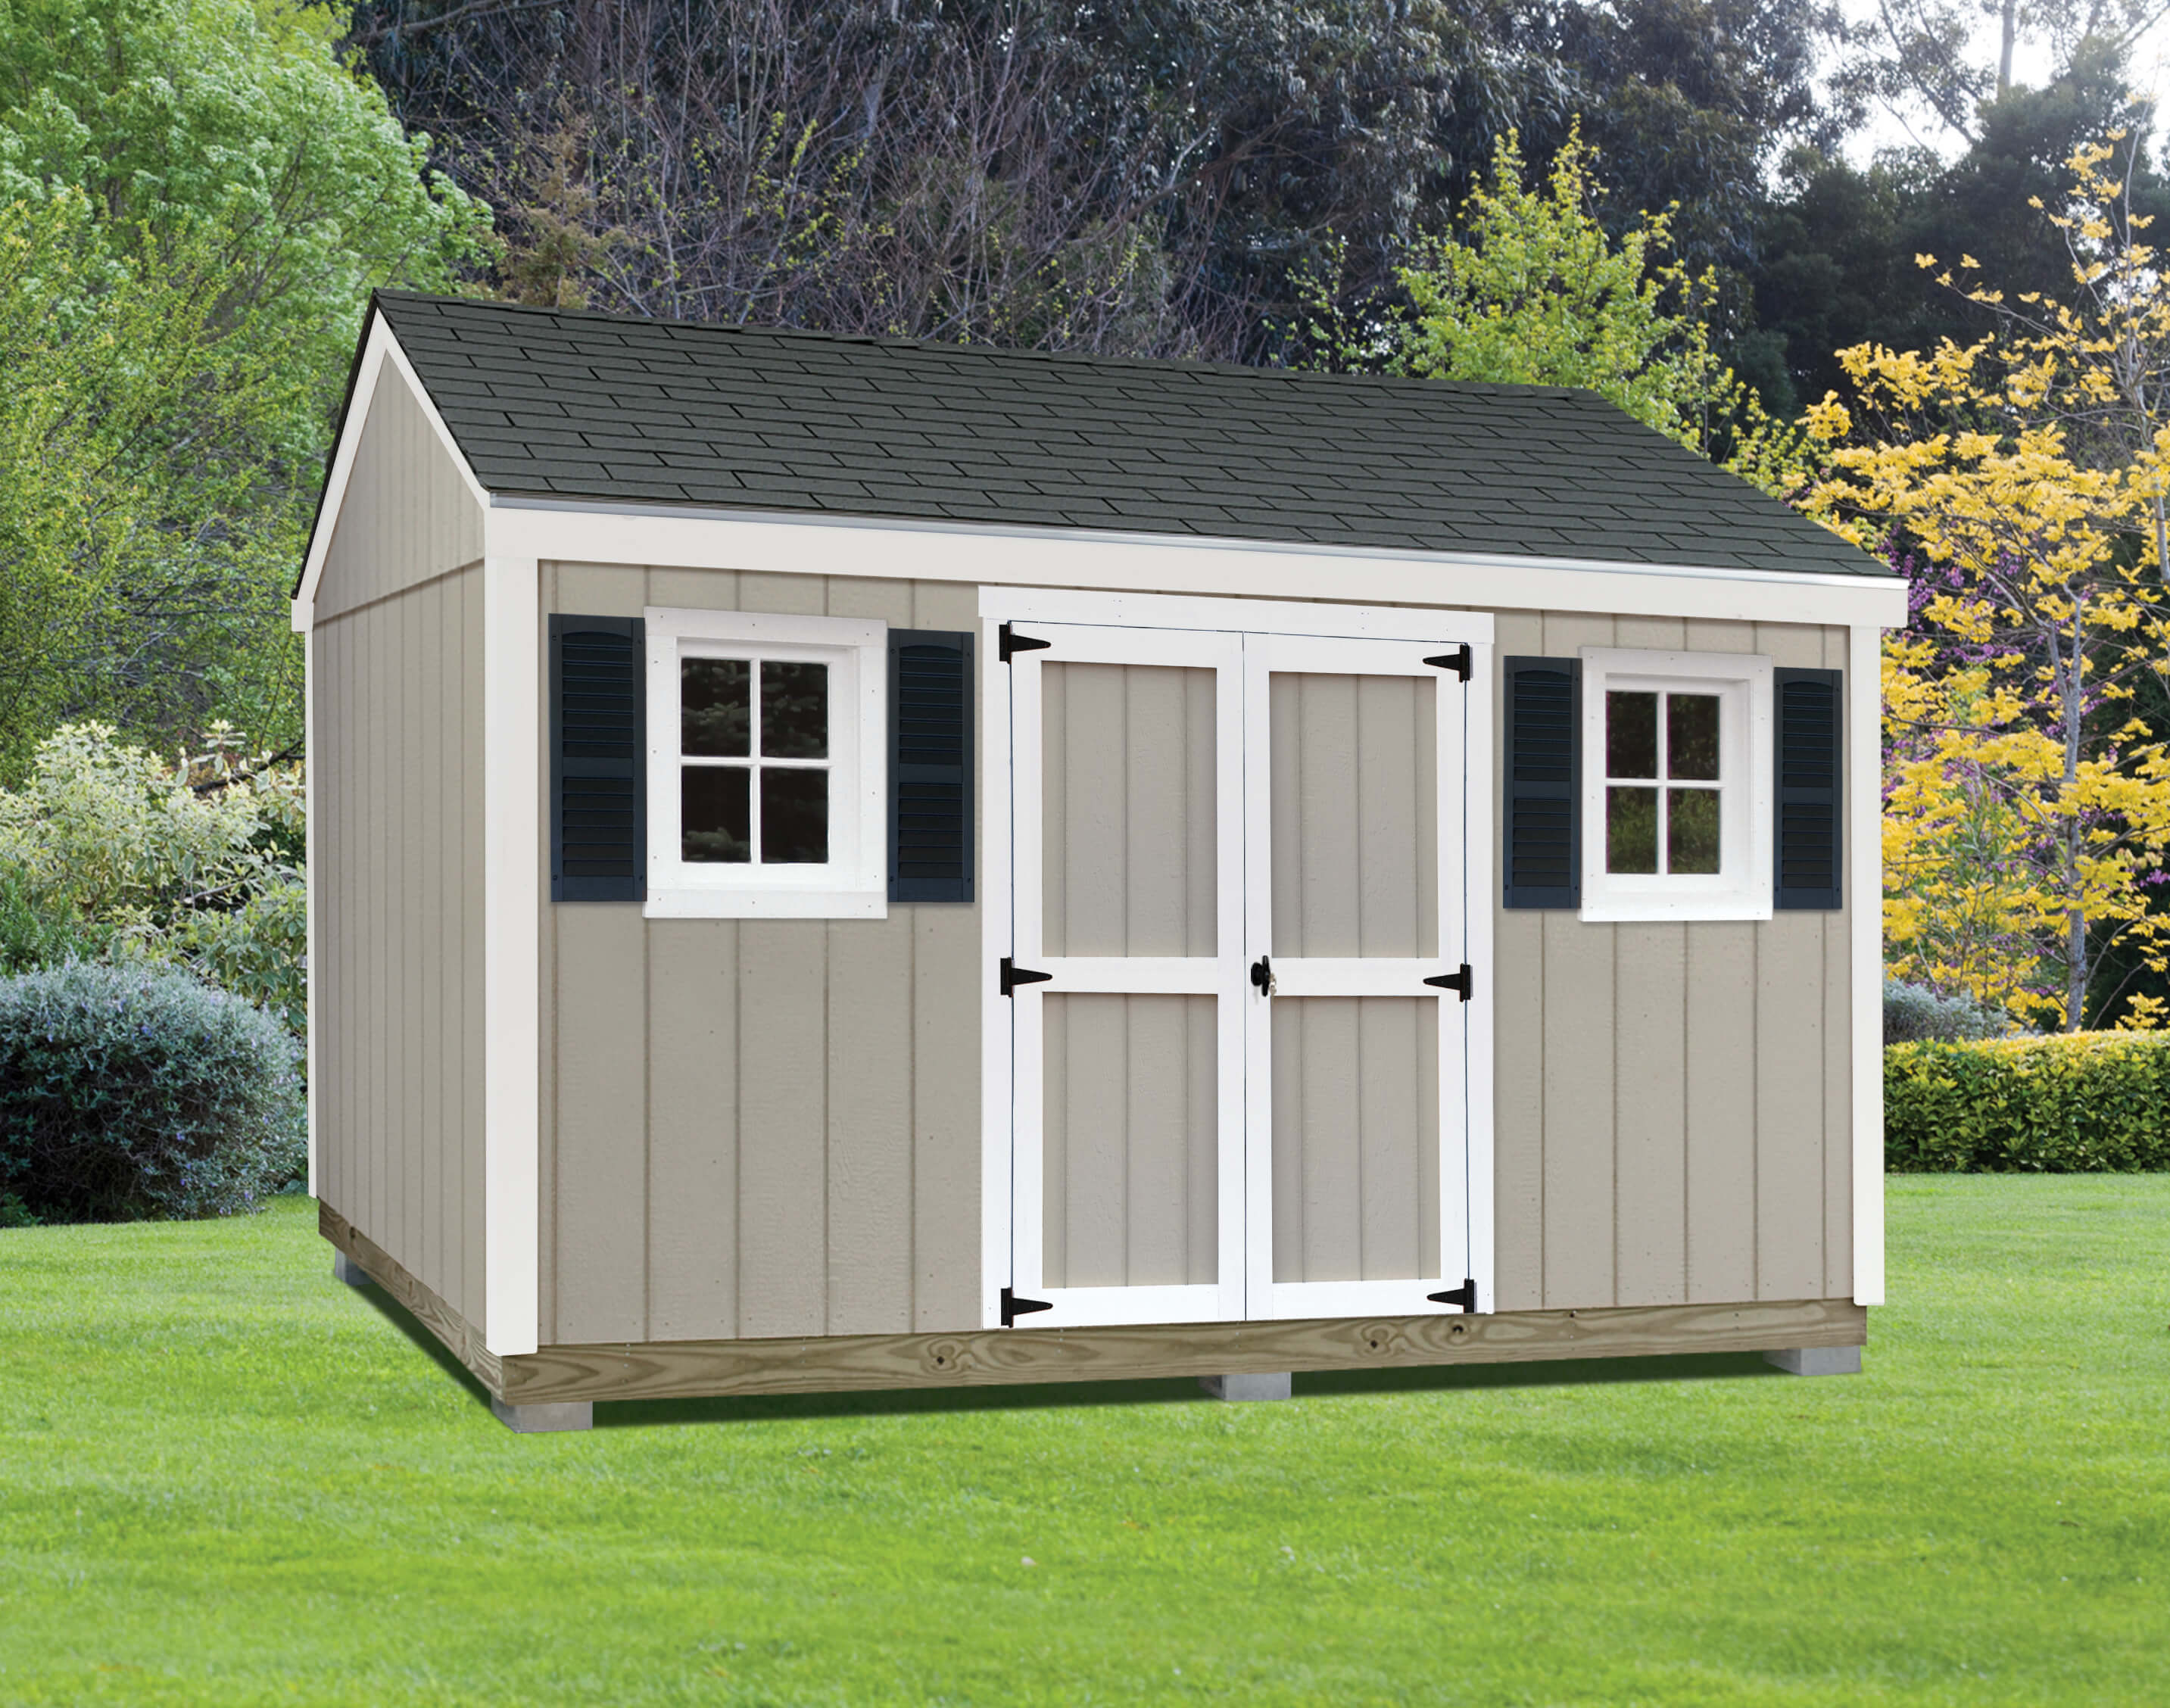 Get Prefab Sheds to make your construction faster